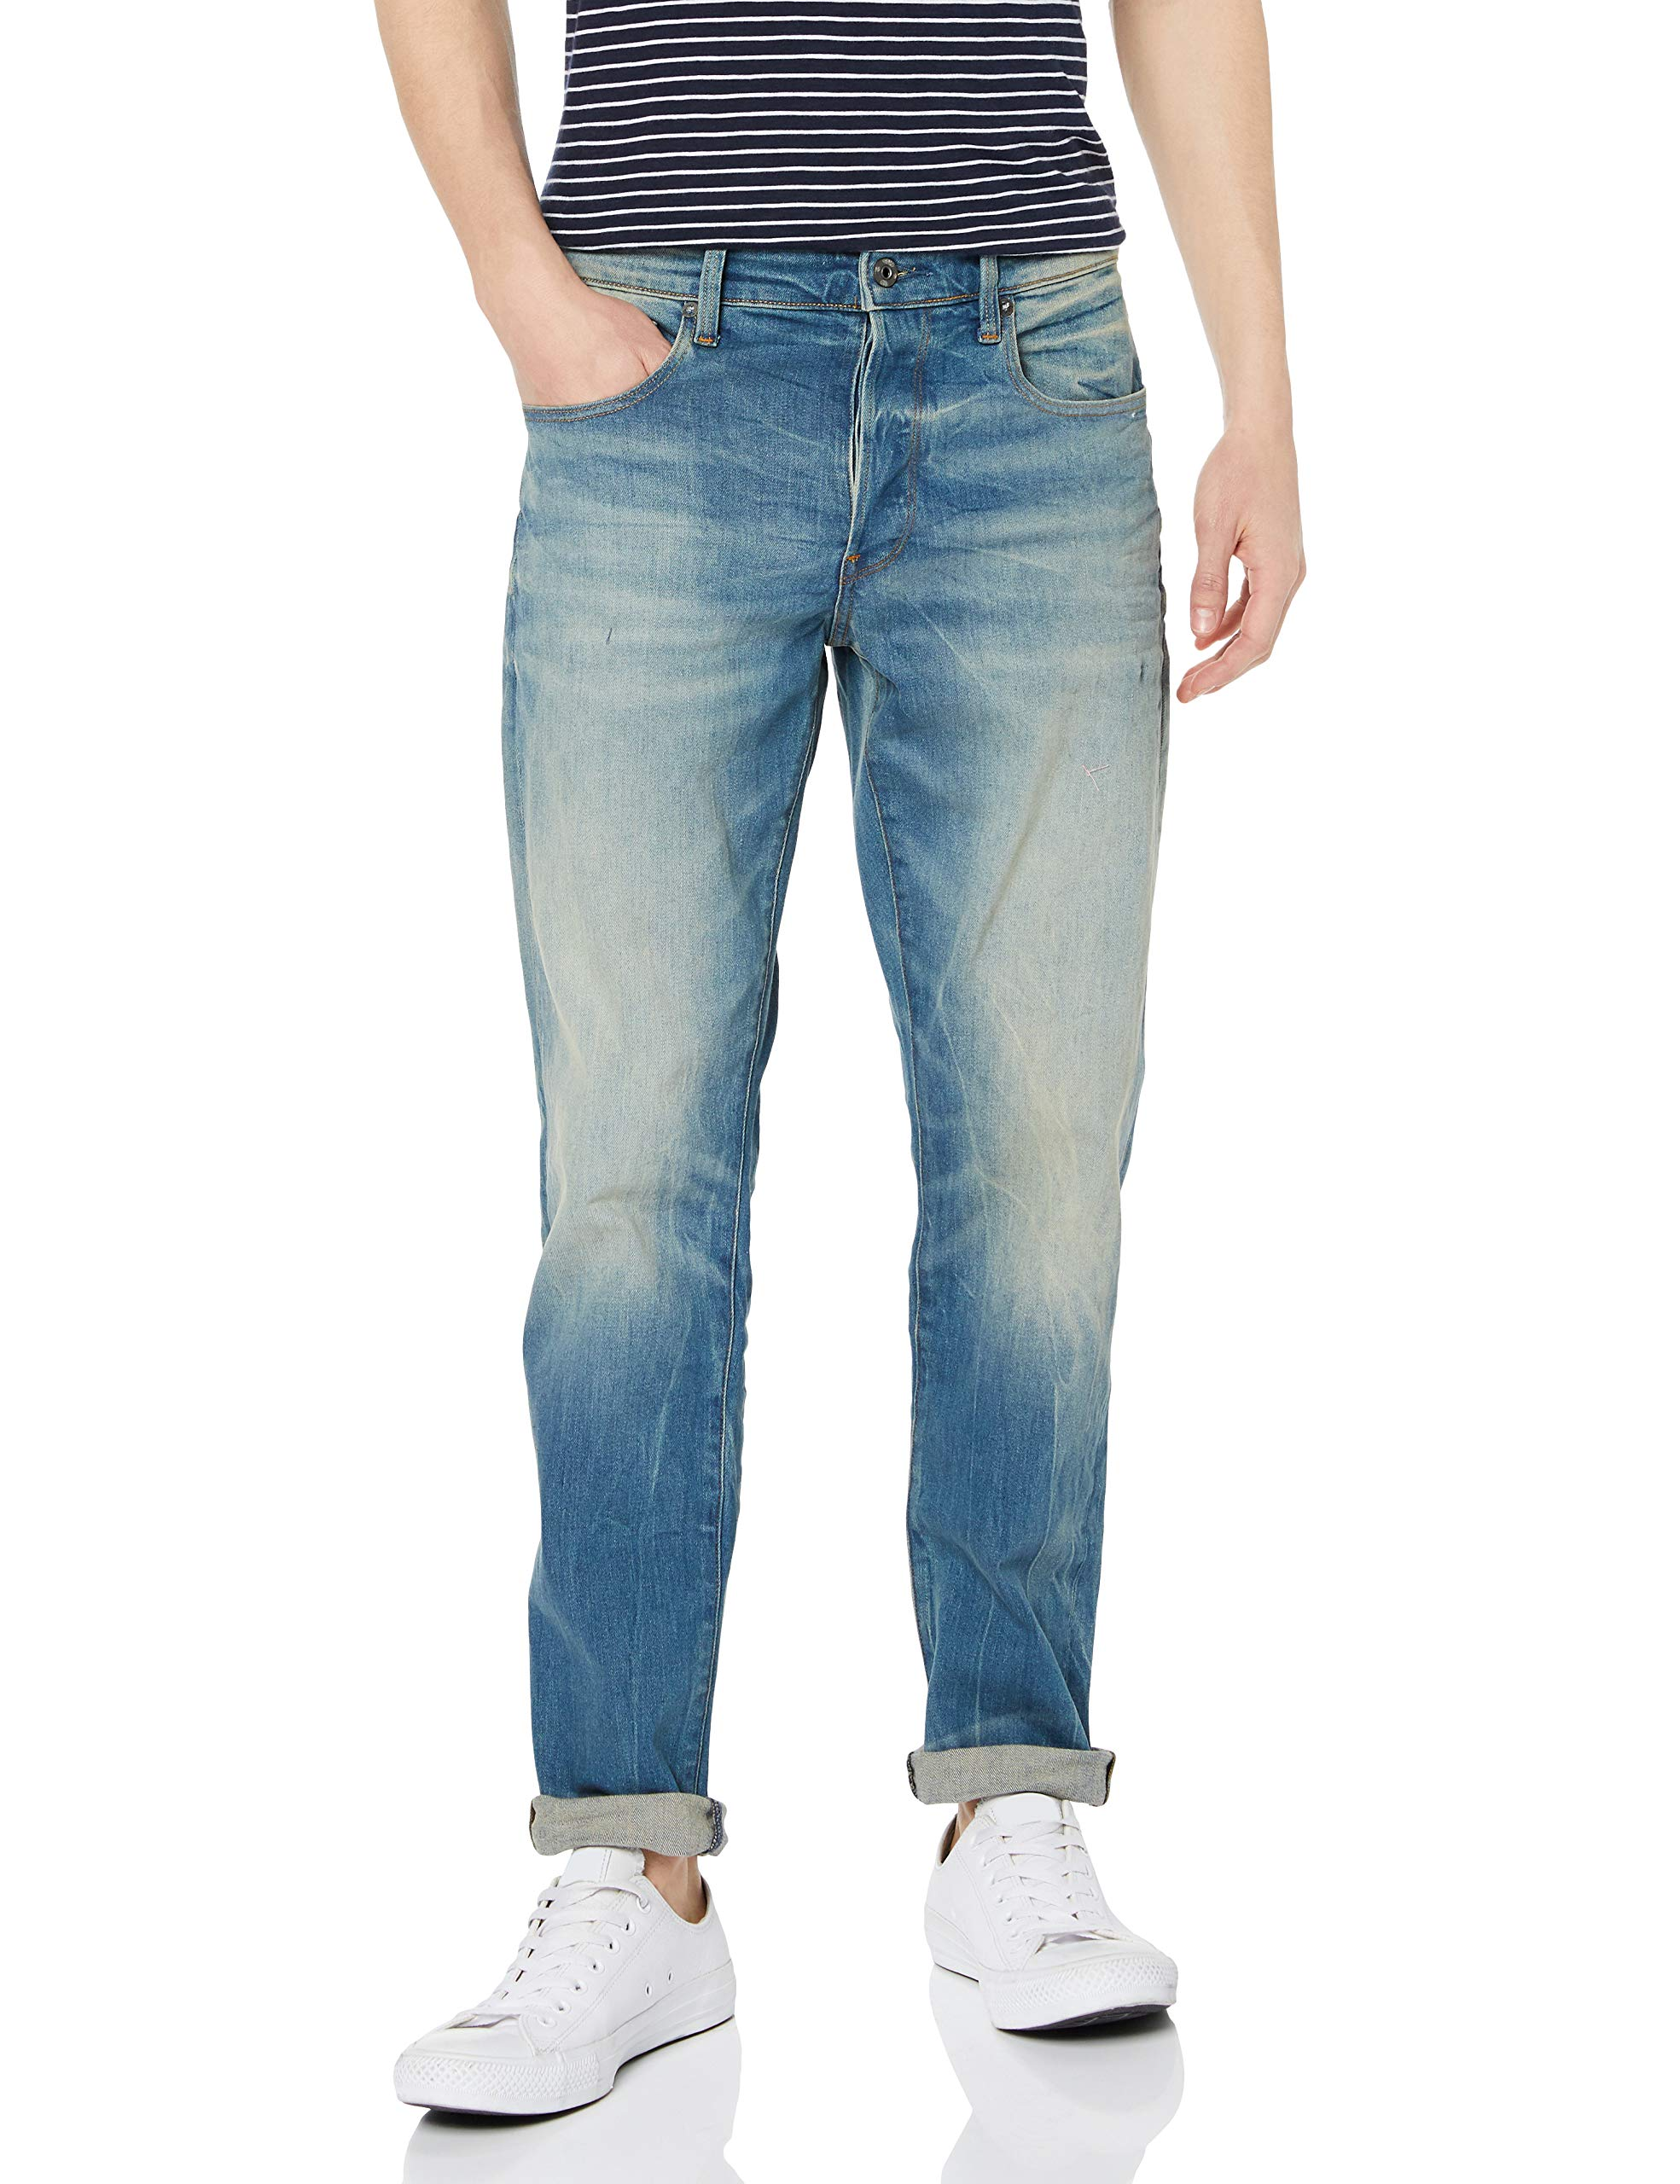 star Homme Straight Raw JeansBleult Aged 6541 42428w32l G Tapered 3301 3jL4R5A